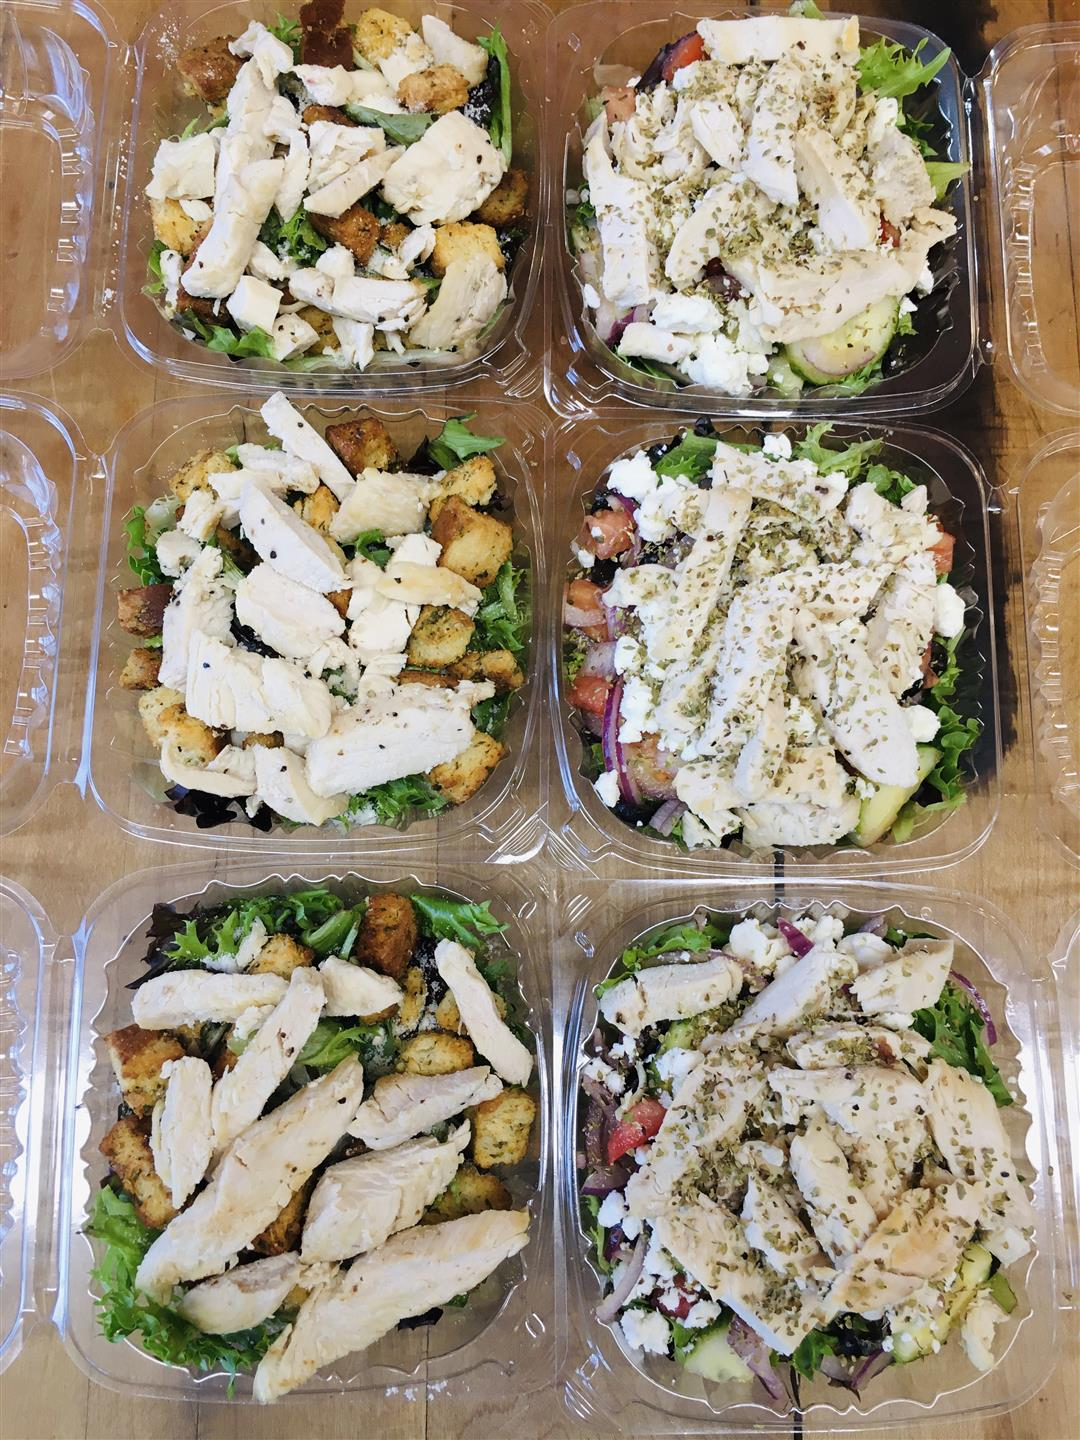 salad containers topped with chicken and croutons